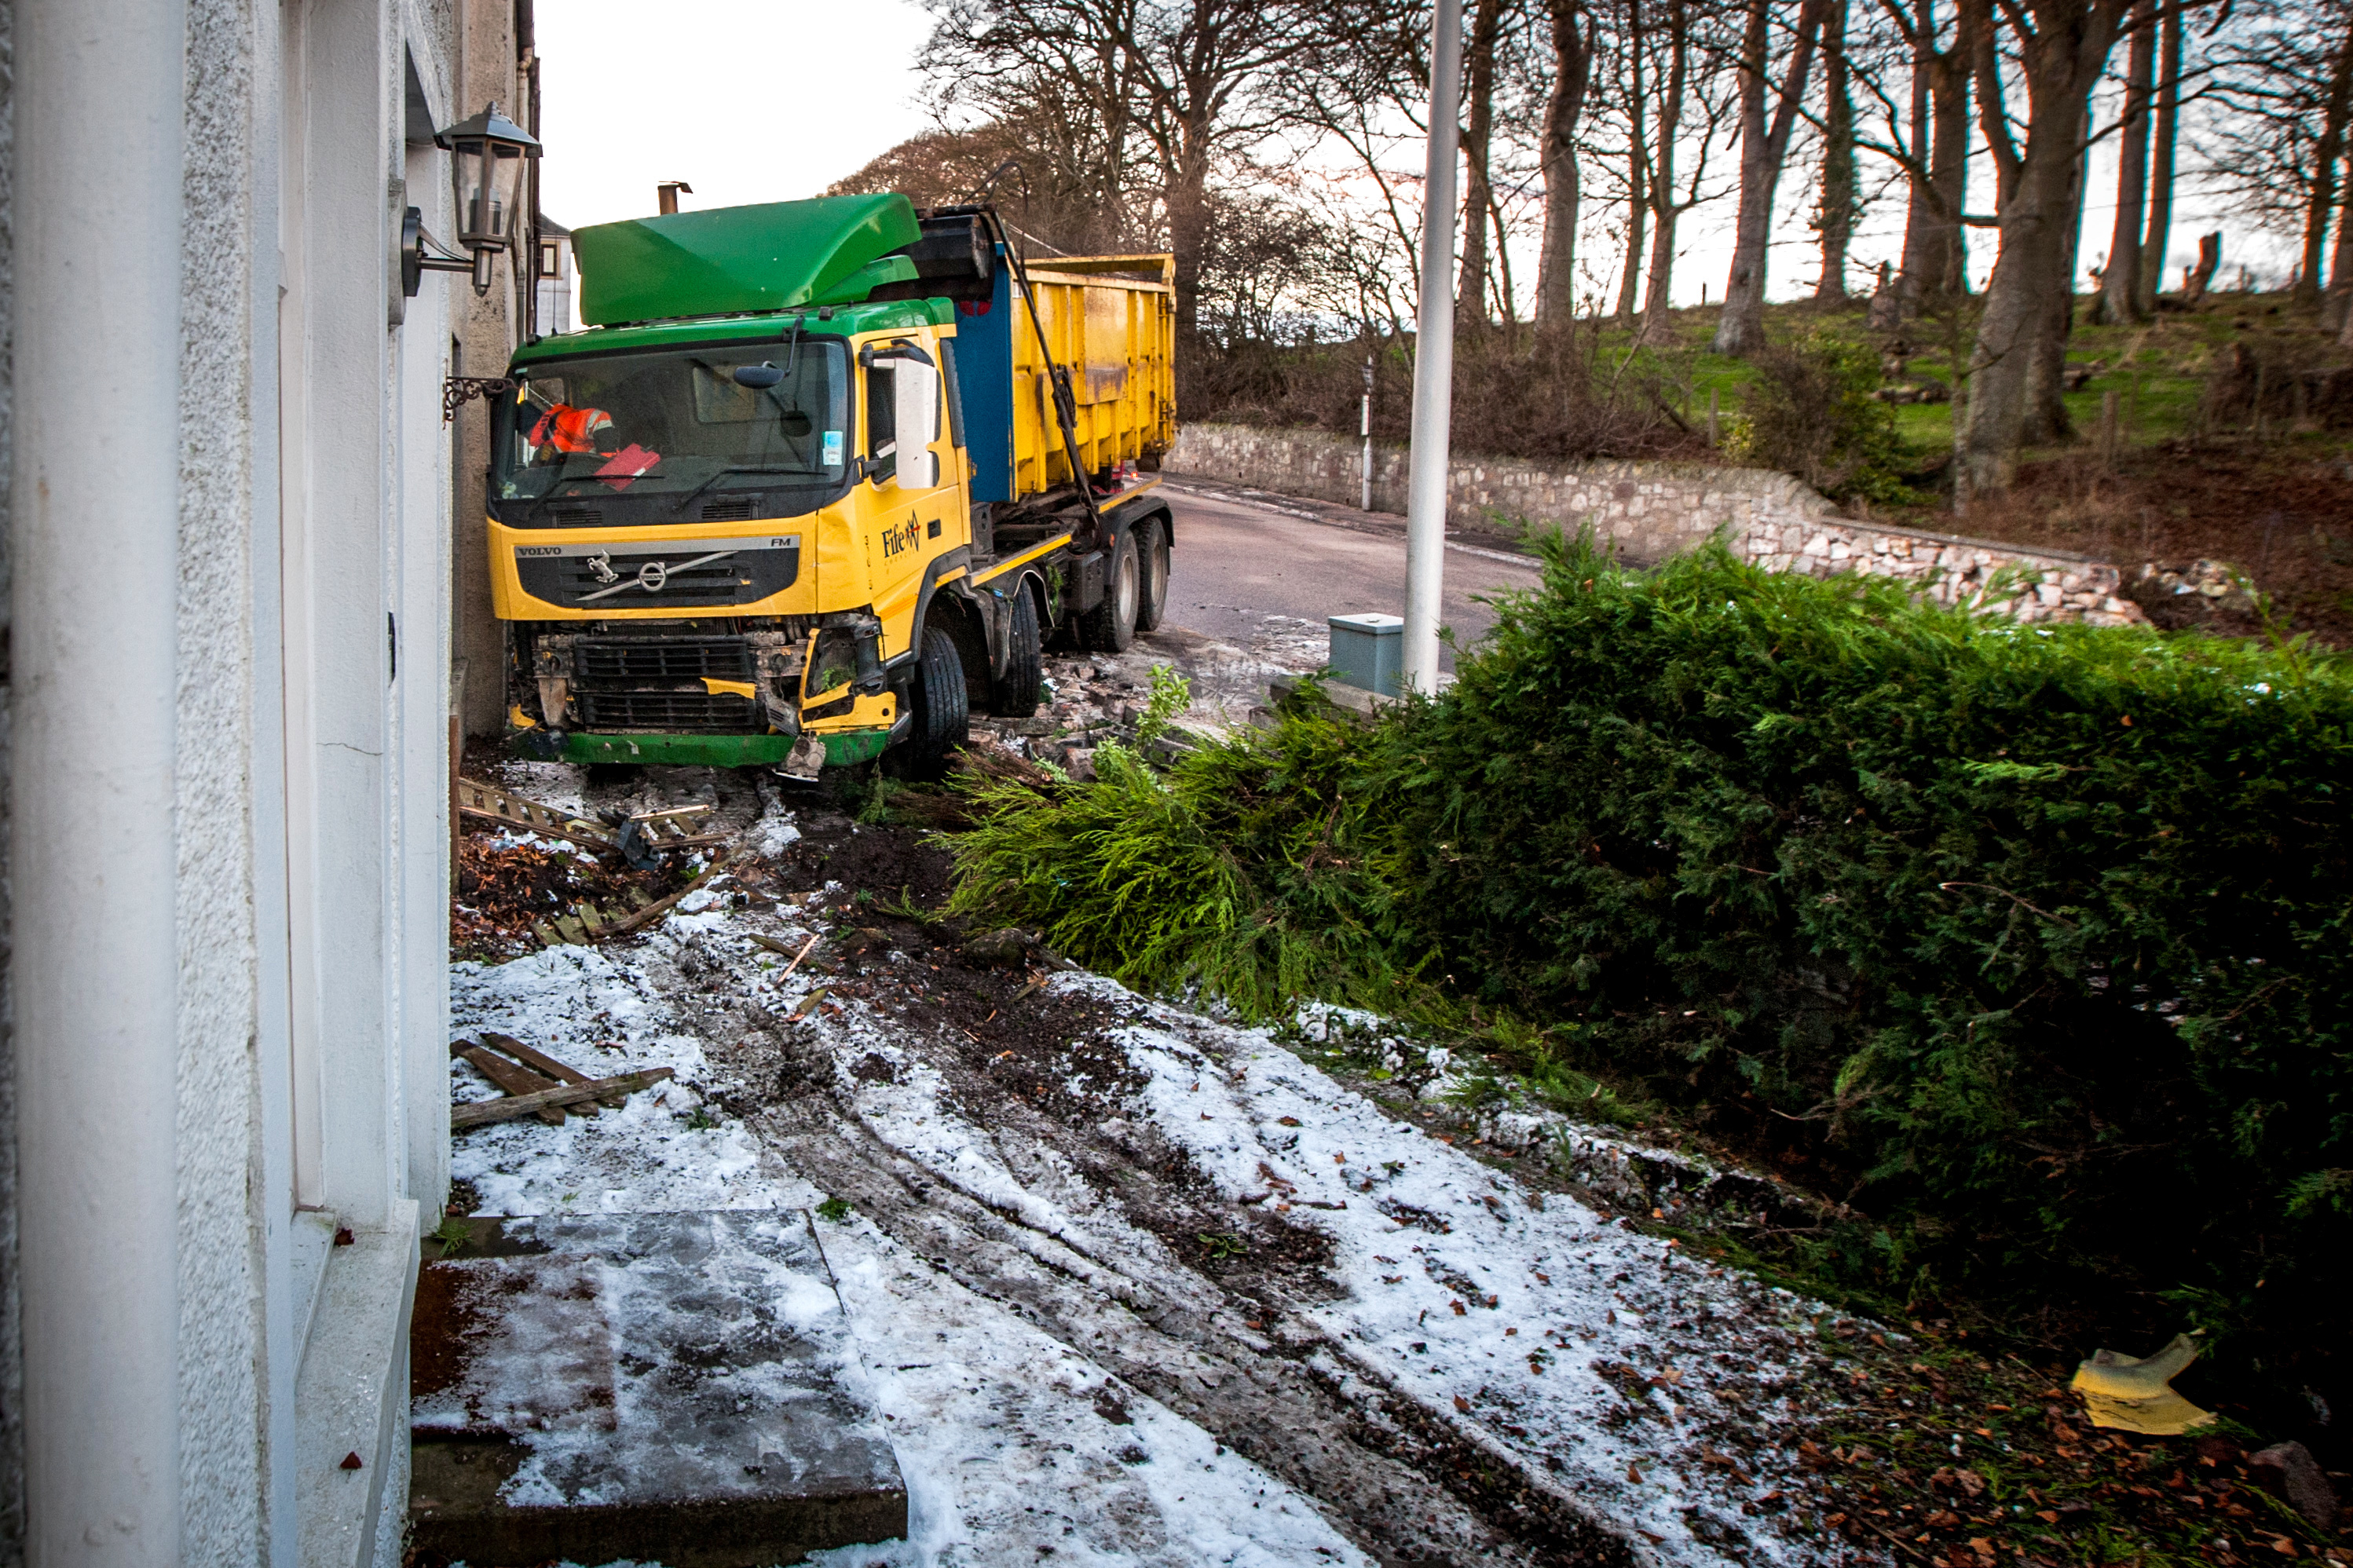 The council skip lorry crashed into vehicles and property in Guardbridge